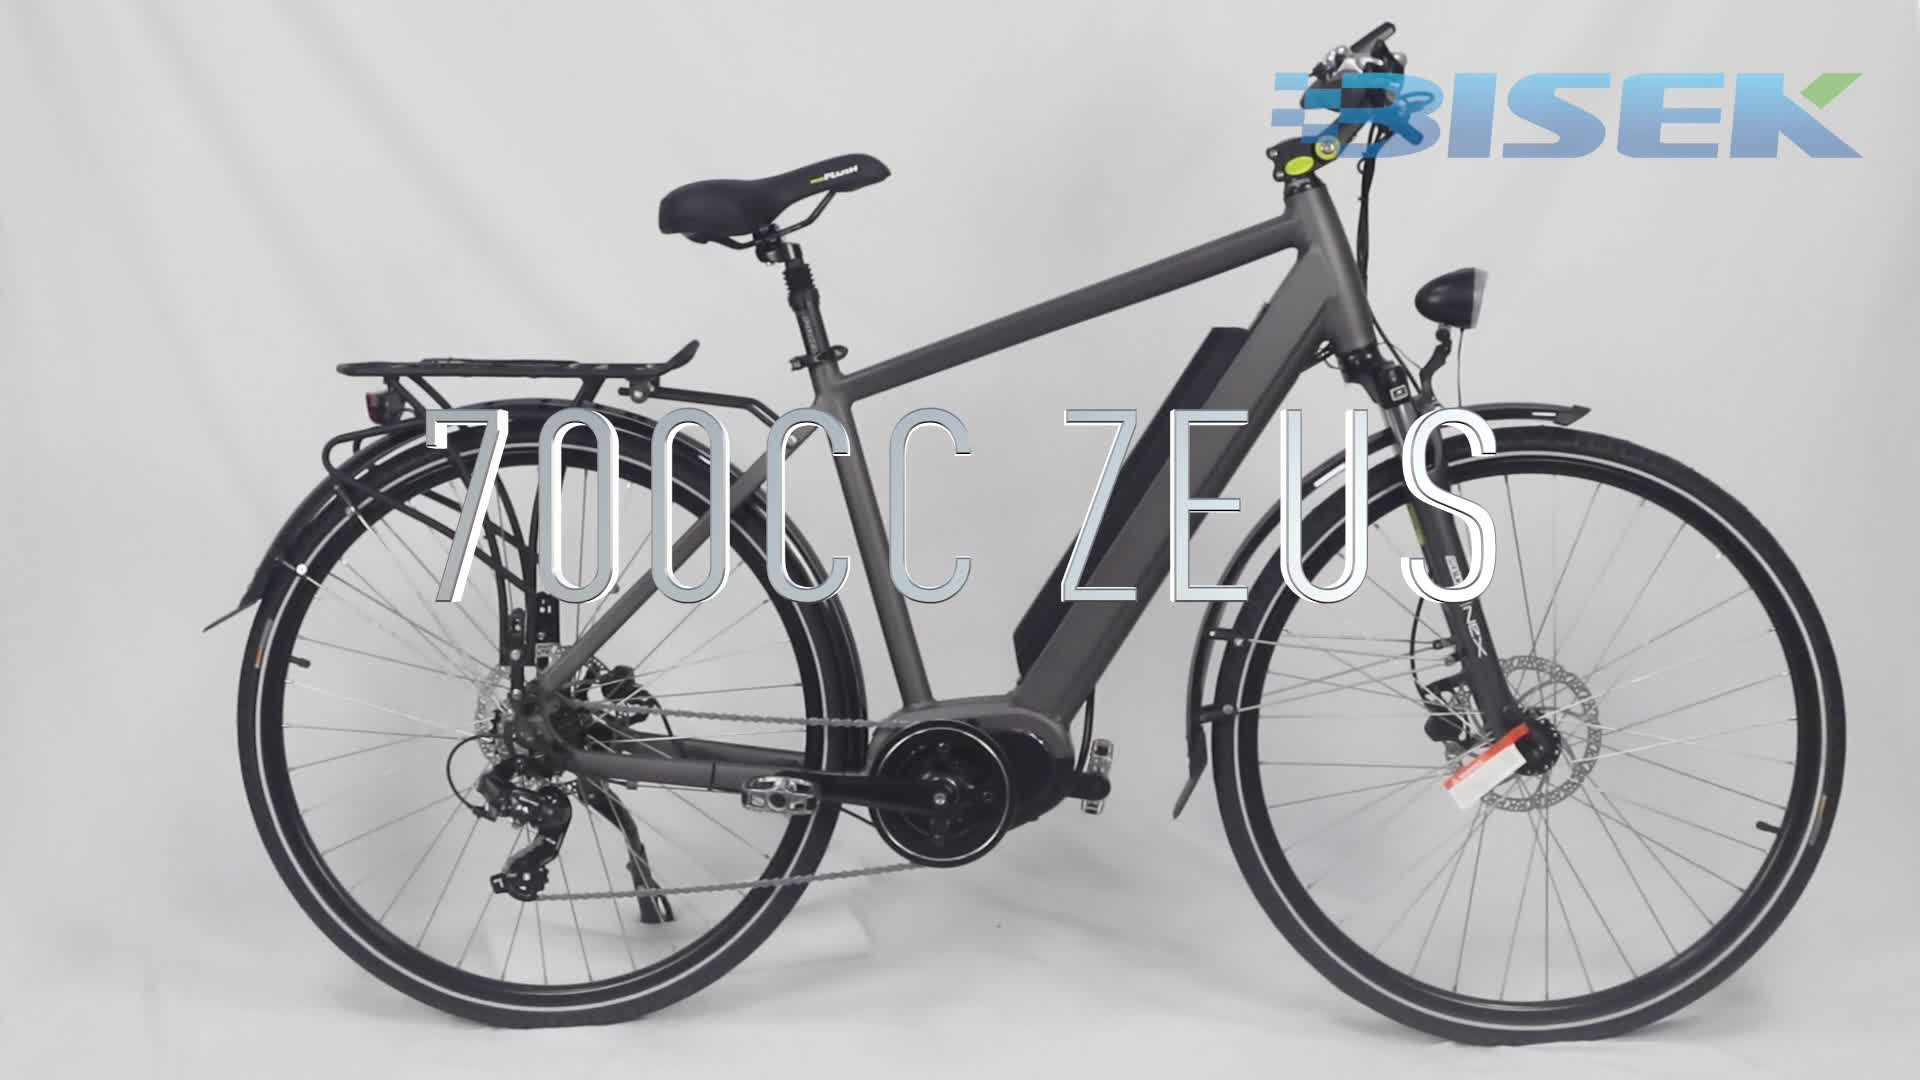 Portable electric city bike with bafang mid drive motor and samsung lithium battery